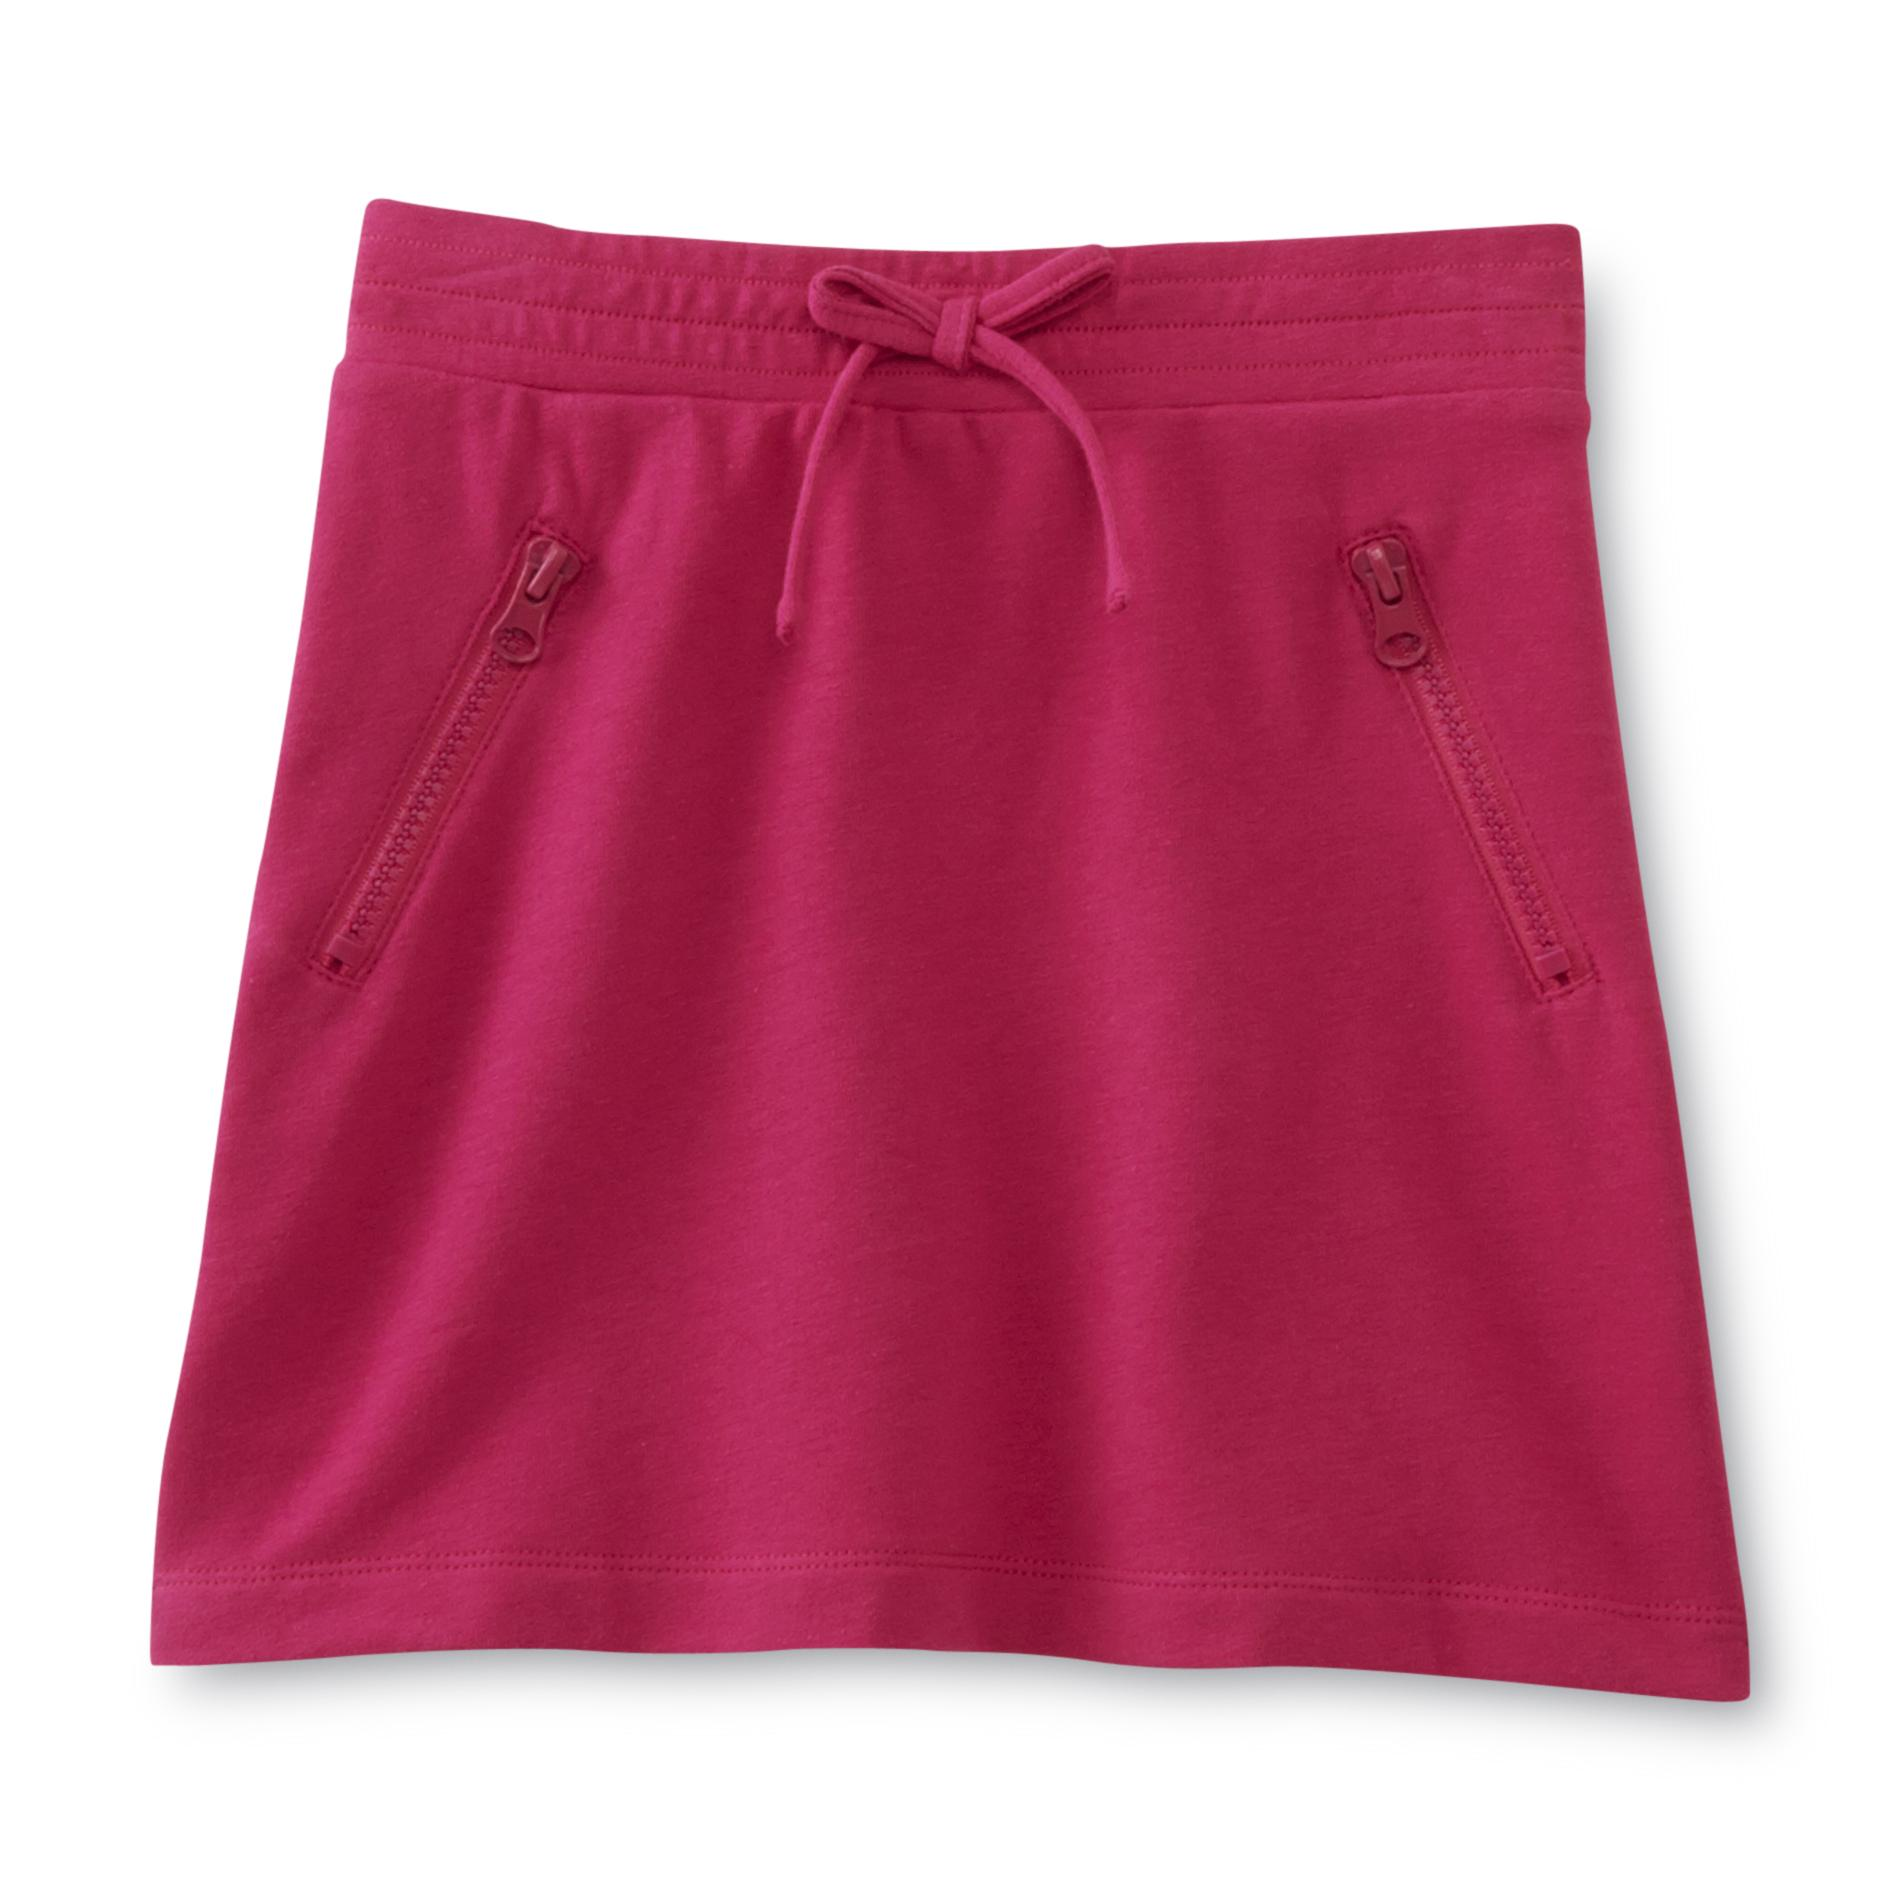 Piper Faves Girl's French Terry Knit Skirt